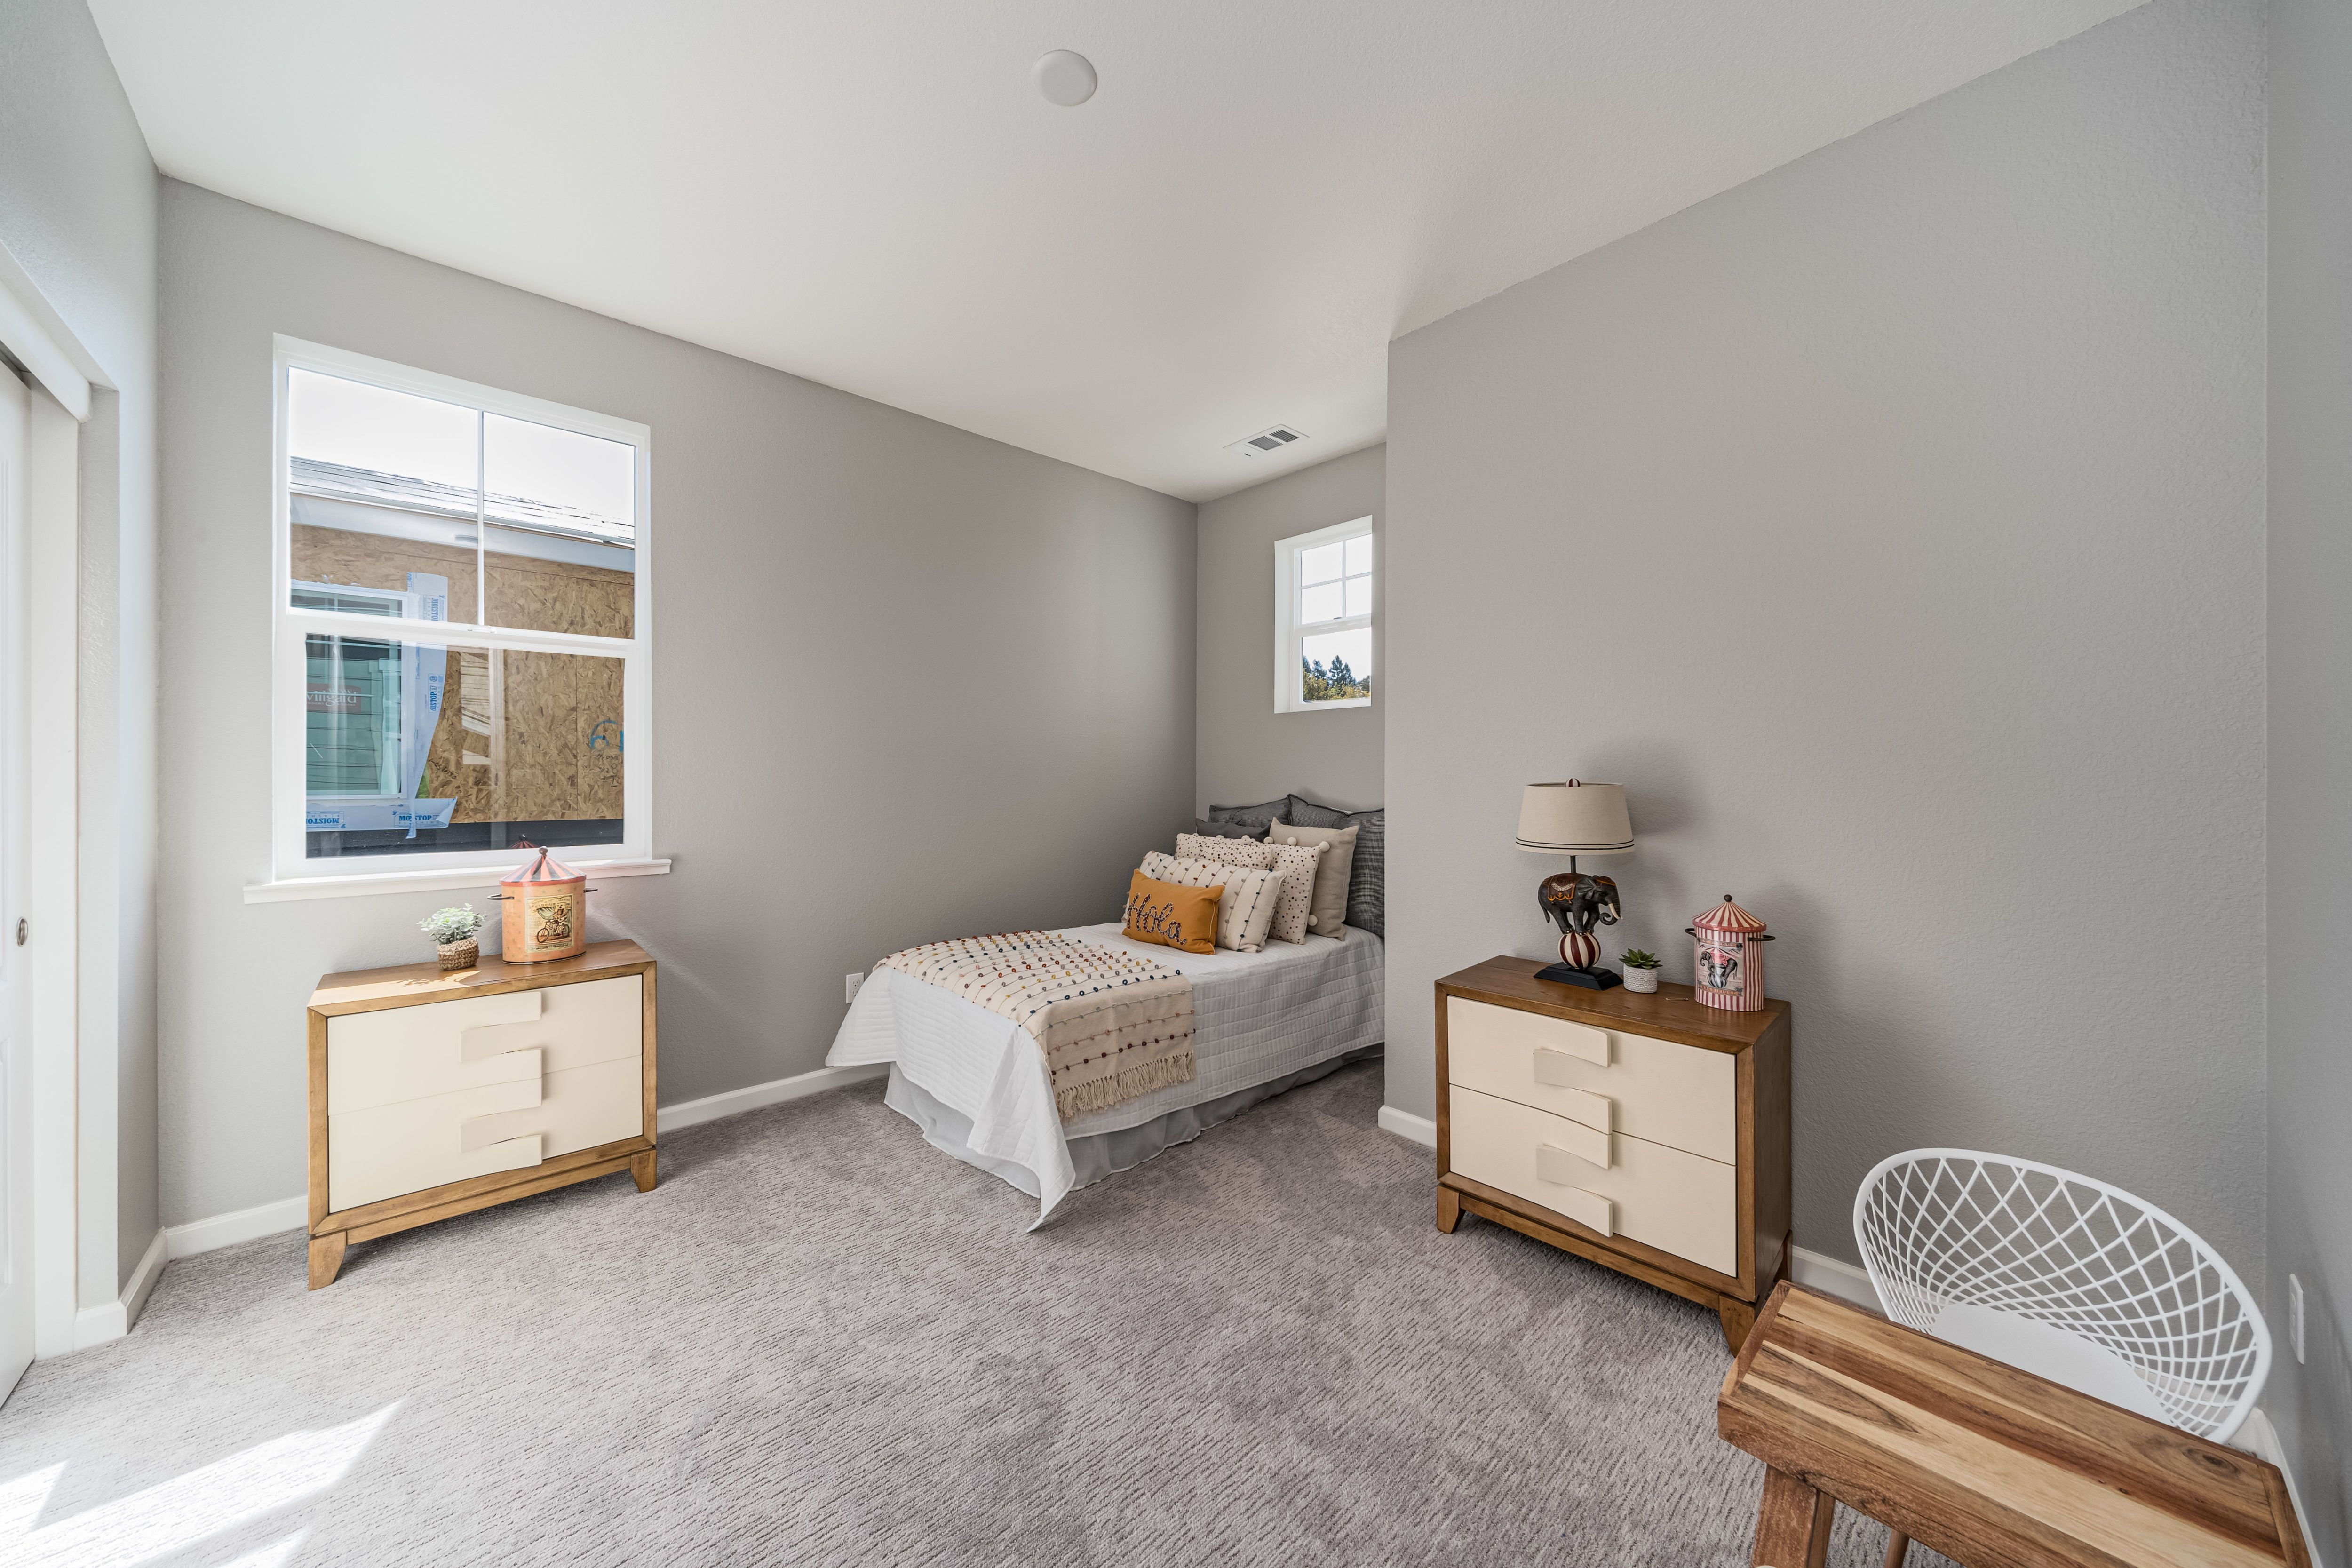 Bedroom featured in the Plan 3C By W Marketing in Santa Rosa, CA